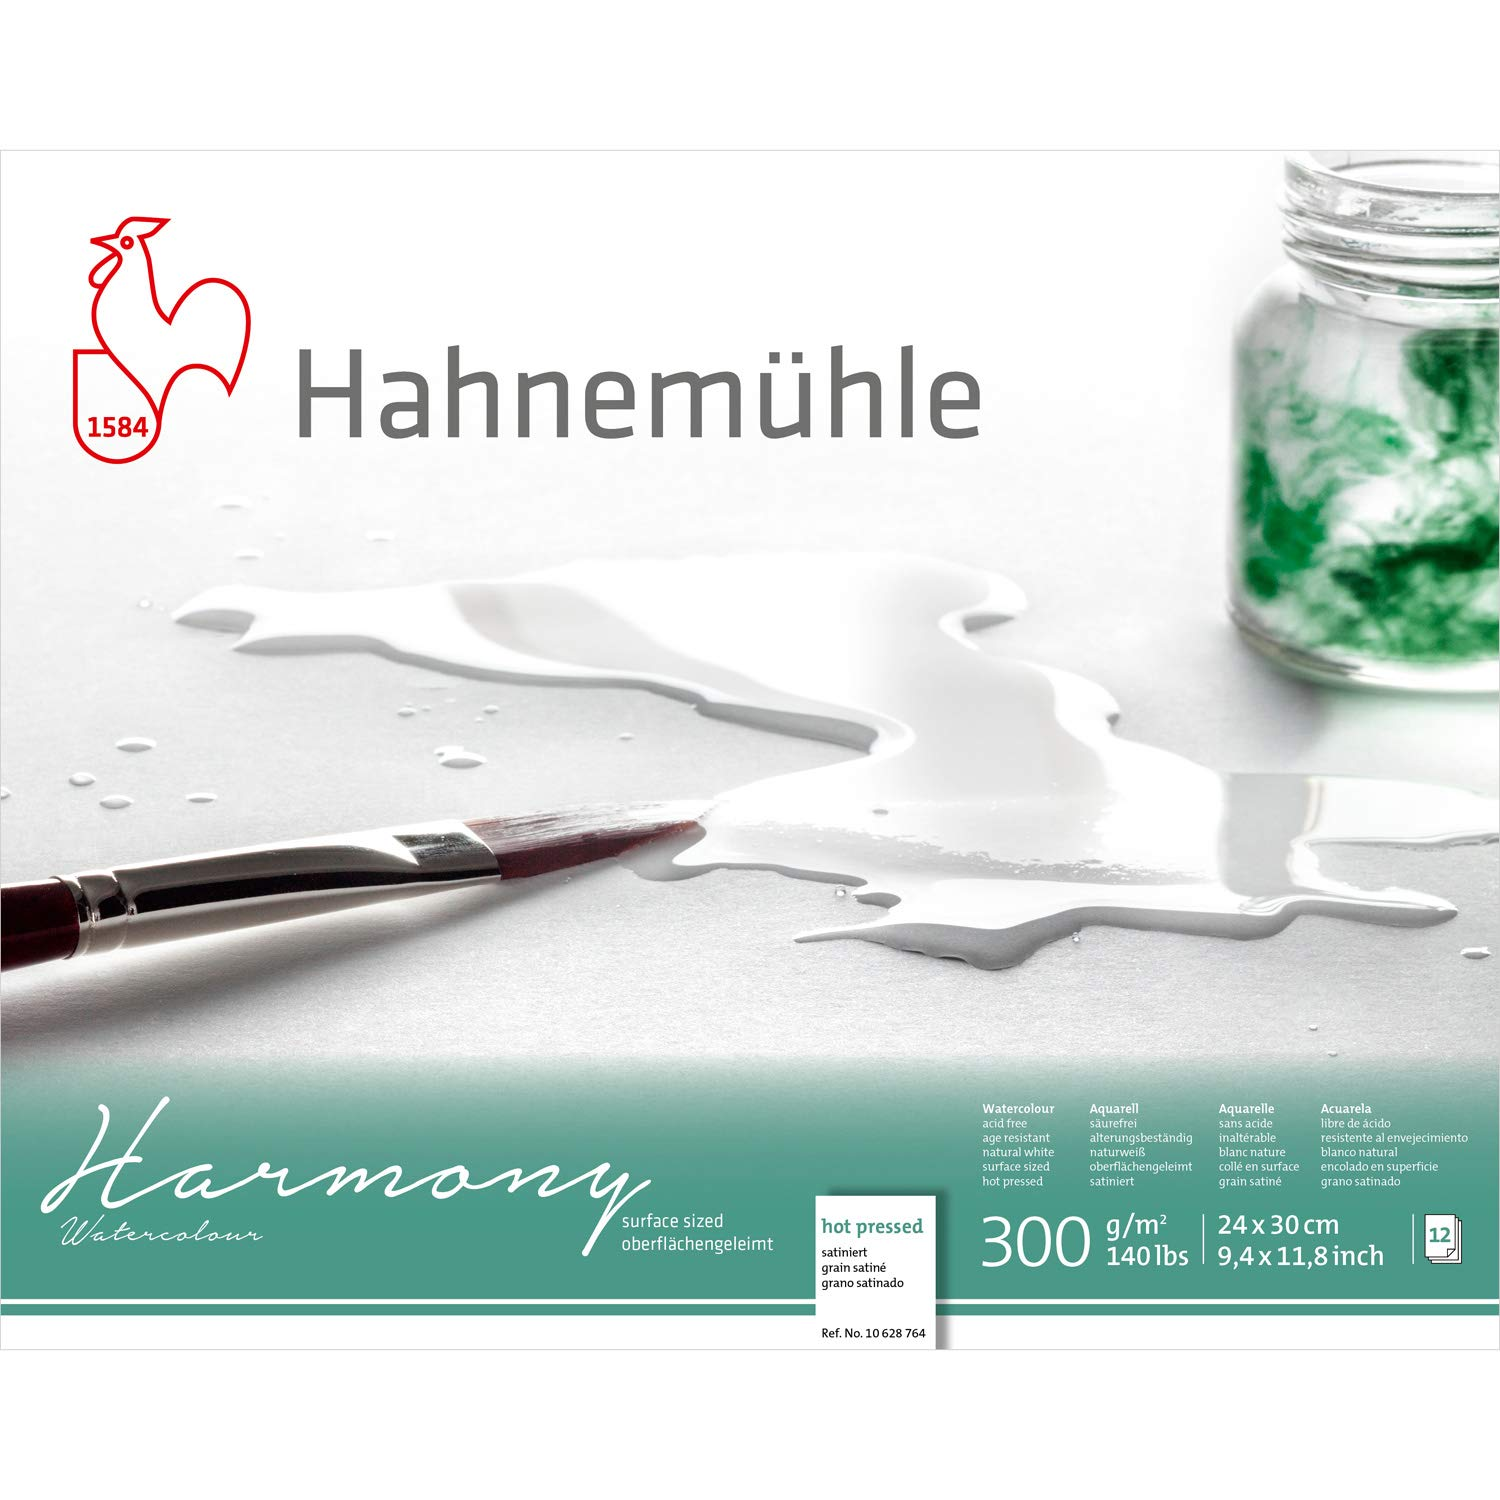 Hahnemuhle Harmony Watercolour Block,12 Sheets, 24x30cm Hot Press